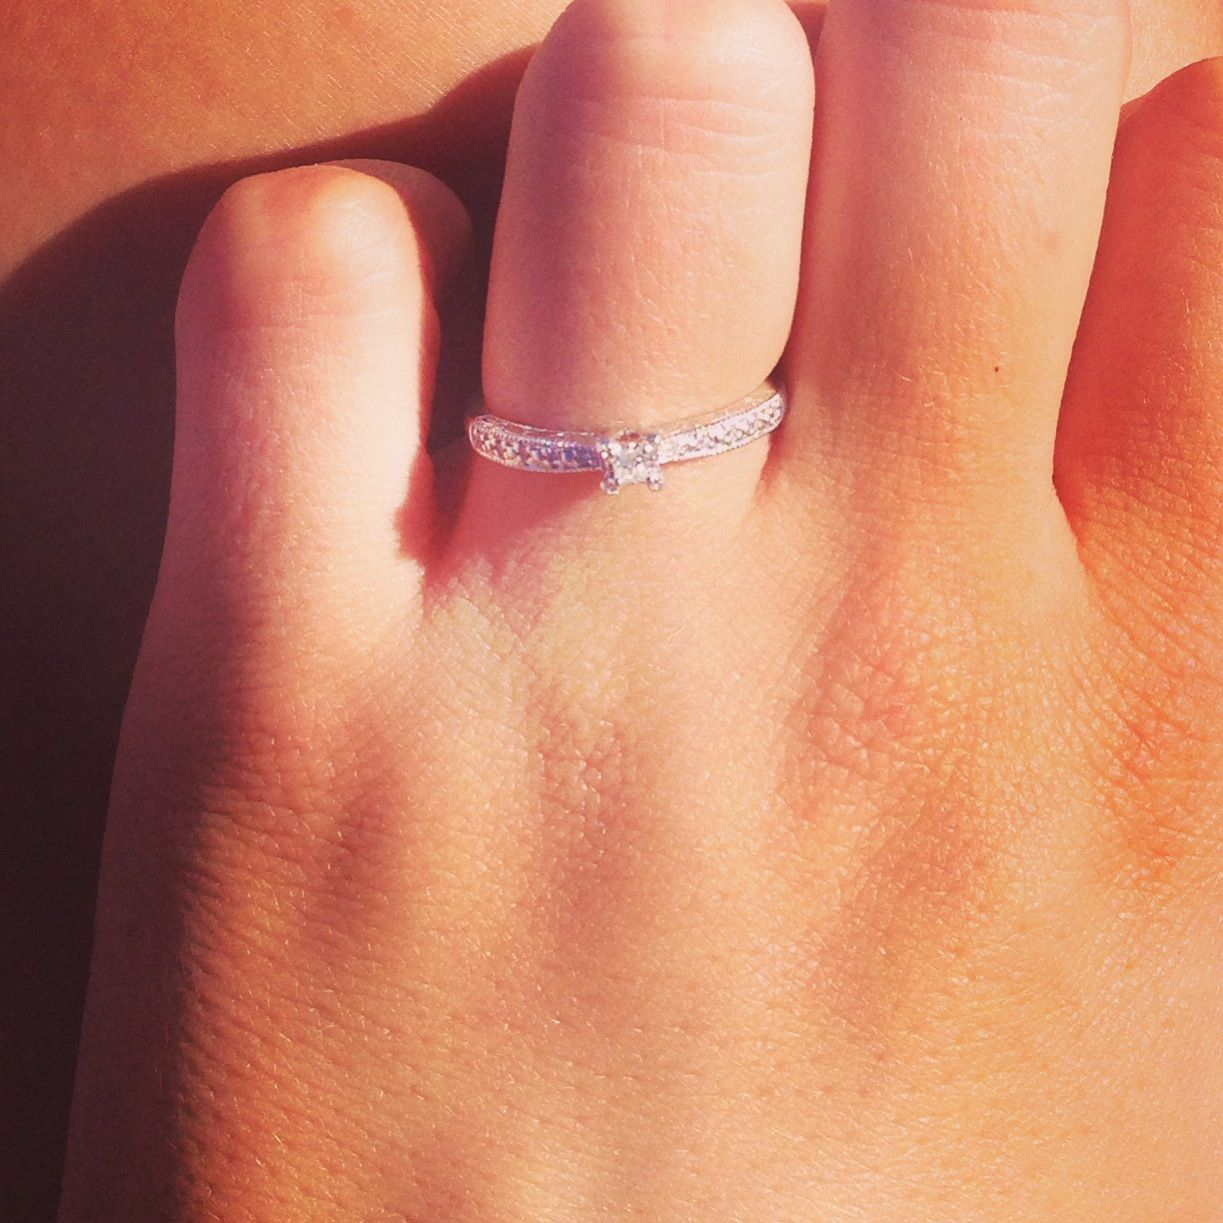 I Love This Ring So Much